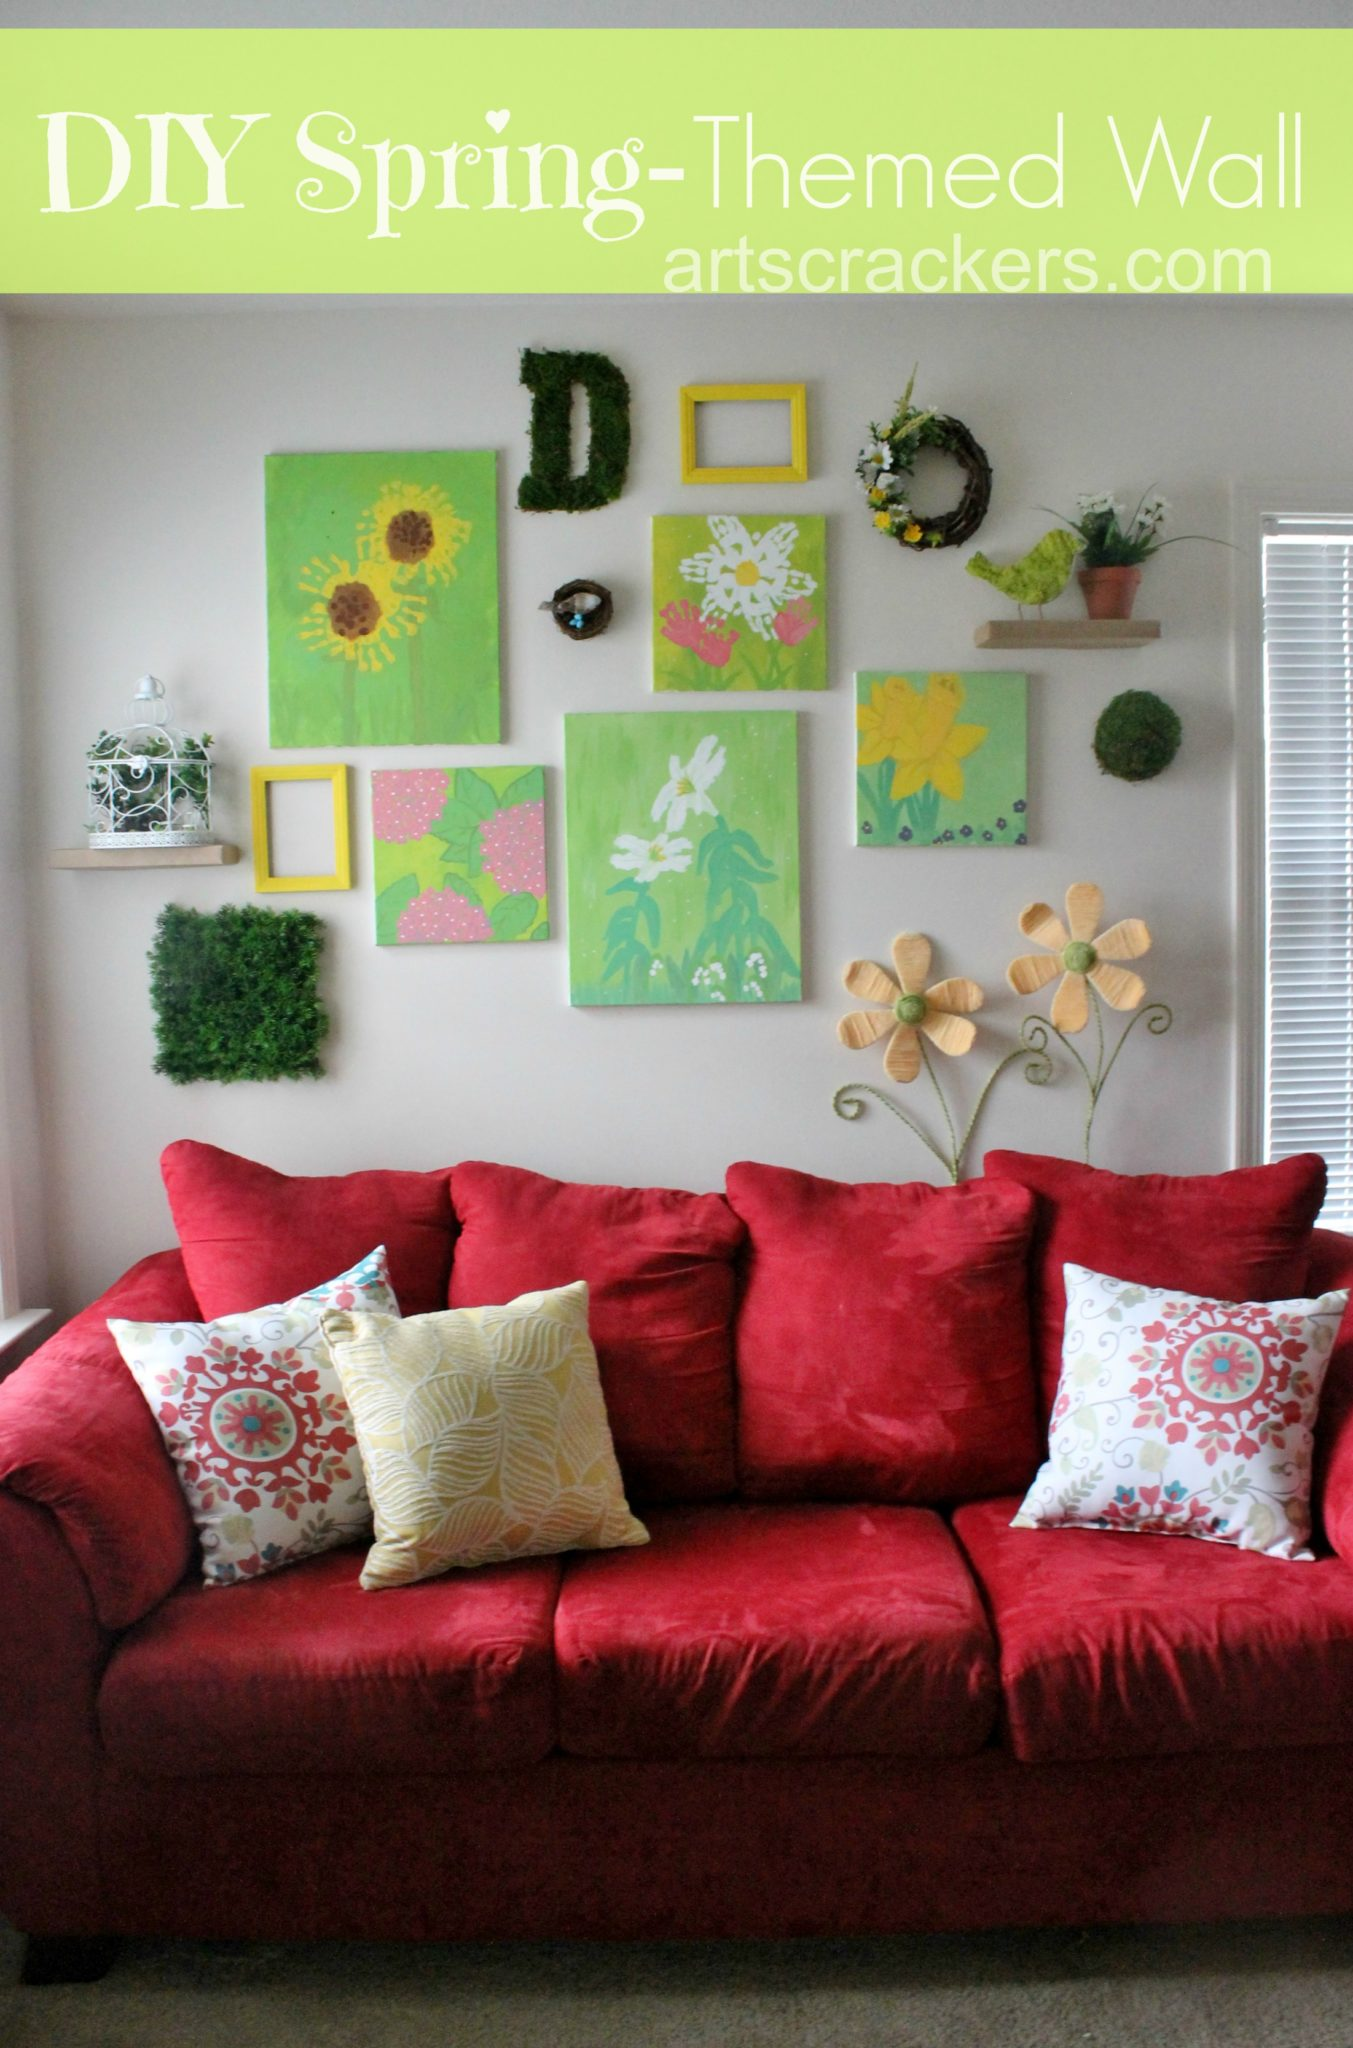 DIY Spring Themed Wall Decor. Click the picture to see how it's done.